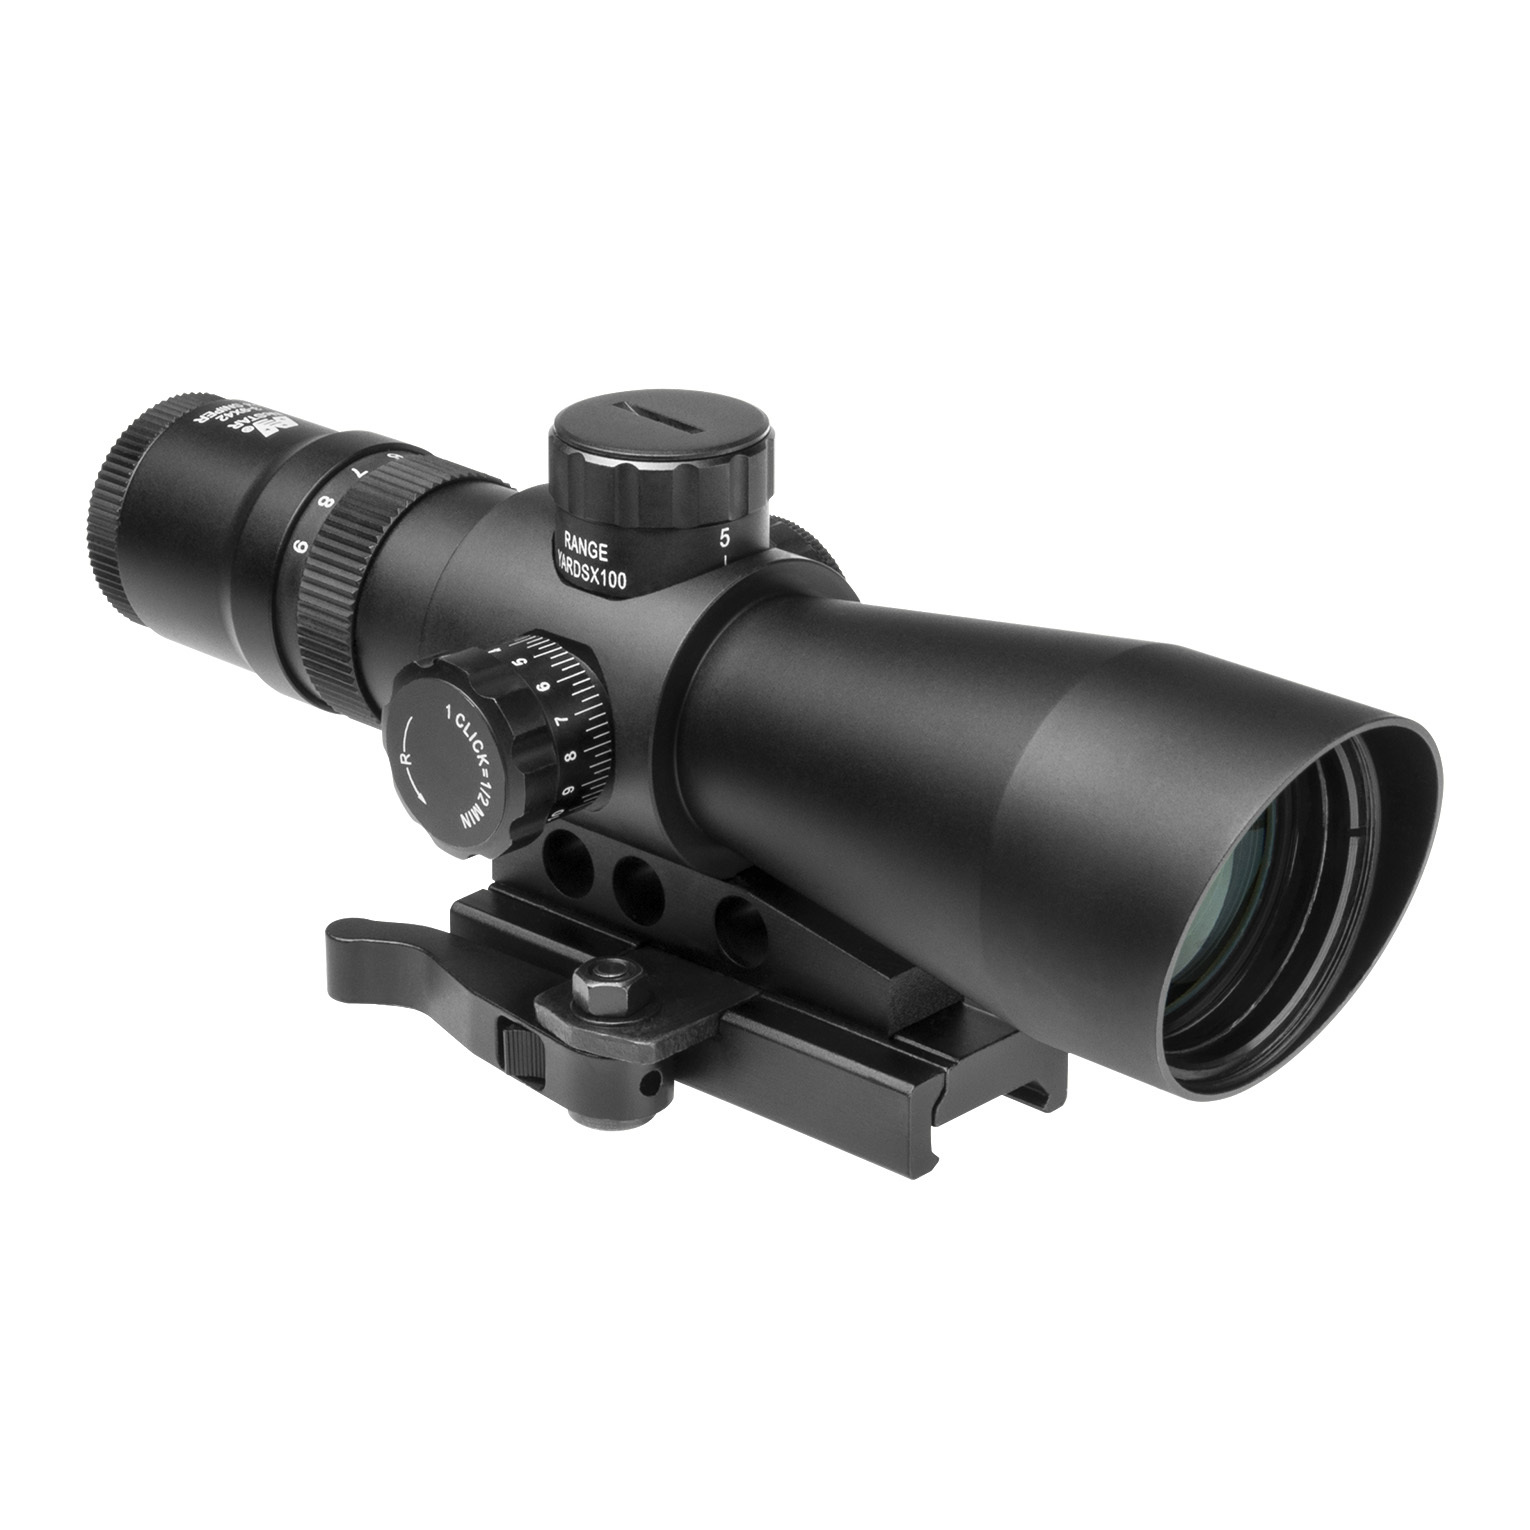 "NcSTAR 3-9x42 Mark III Tactical Gen 2 Mill Dot Scope is tack-driving toughness for your AR! The ultimate sight for your tactical AR! The NcSTAR SRT Series 3-9x42 Mark III Tactical Gen 2 Mill Dot Scope gives deliver BIG quality and performance features in a compact size. Spot your target with the dual-illuminated Mil-Dot reticle that adapts for all lighting conditions, then set up the shot and nail it every time thanks to the built-in .223 bullet drop compensator!Scope Details:Variable 3-9X magnification for every shooting situation 42mm objective lens pulls in the light under the worst conditions Blue / green dual-illuminated Mil-Dot reticle with multiple brightness settings adapts for all conditions Fully multi-coated optics for enhanced contrast Bullet drop compensator calibrated for the .223 cartridge with a 55 grain bullet Quick focus eyepiece puts you on target in a jiffy F.O.V. @ 100 yds. is 36.8 - 12.0' 1/2 M.O.A. adjustments for windage and elevation Integrated quick-release mount fits any Weaver / Picatinny rail... sets up to use low-profile AR backup sights Aluminum housing with built-in sunshade and black painted finish Includes lens caps and an extra battery Approx. 7 1/2""l, 17 1/3 ozs. State Reticle, as available in the Shopping Cart. - $99.99"